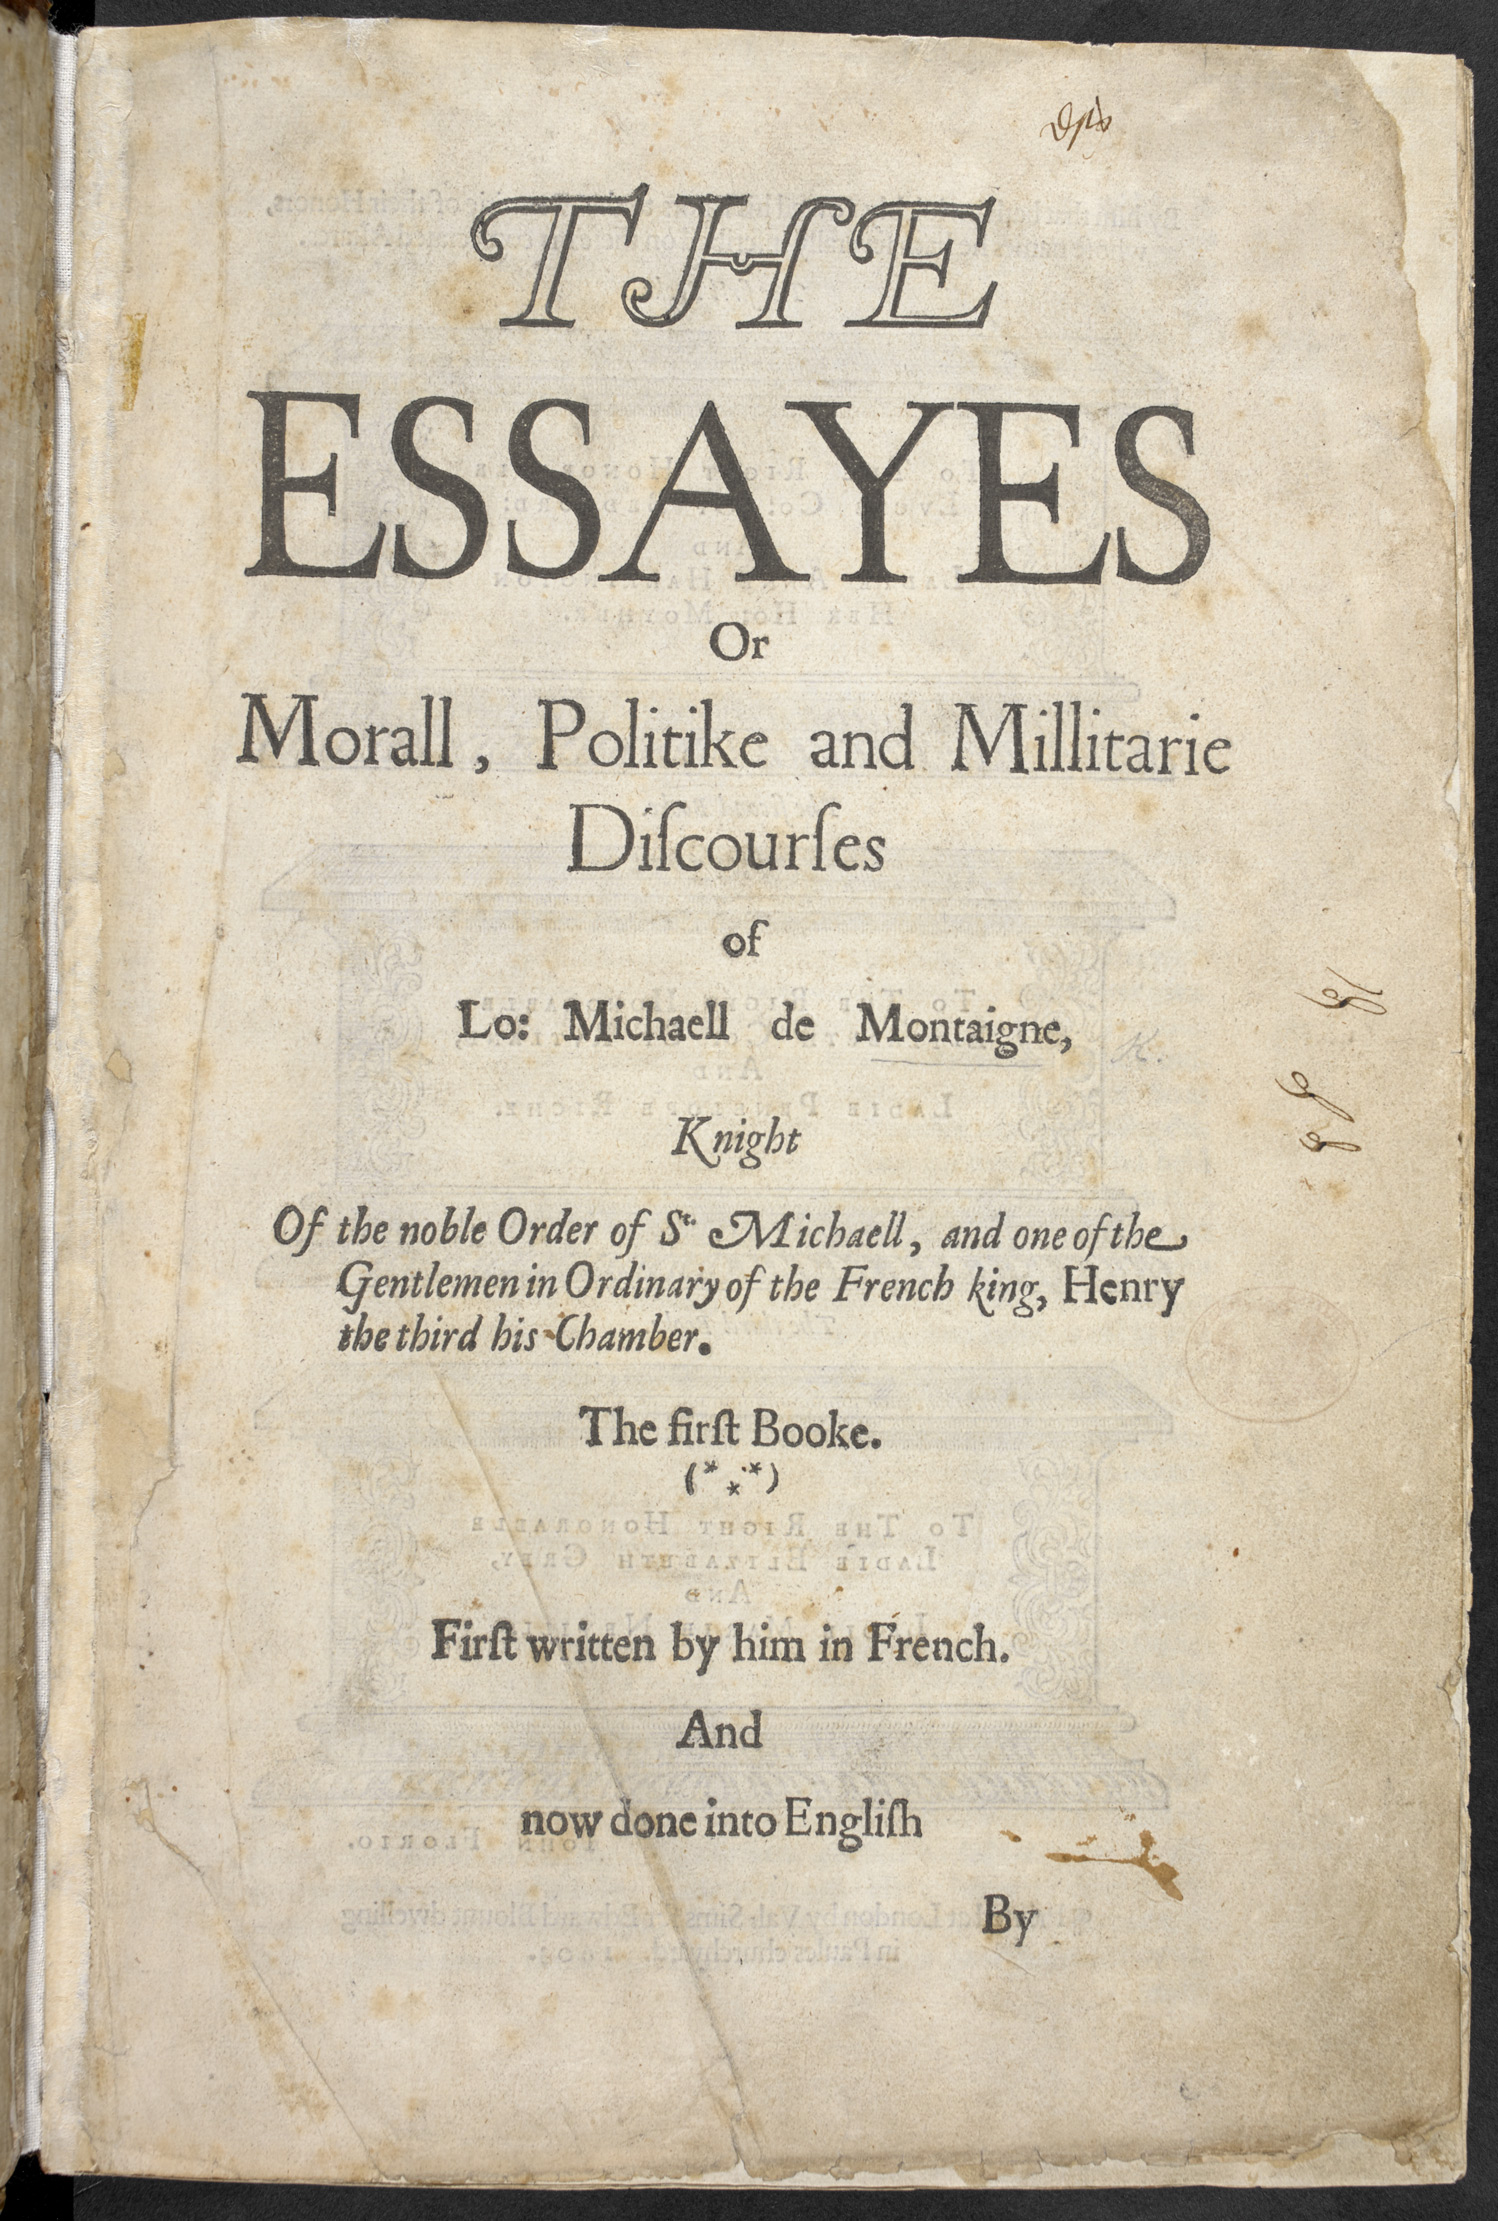 Montaigne's Essays translated by Florio